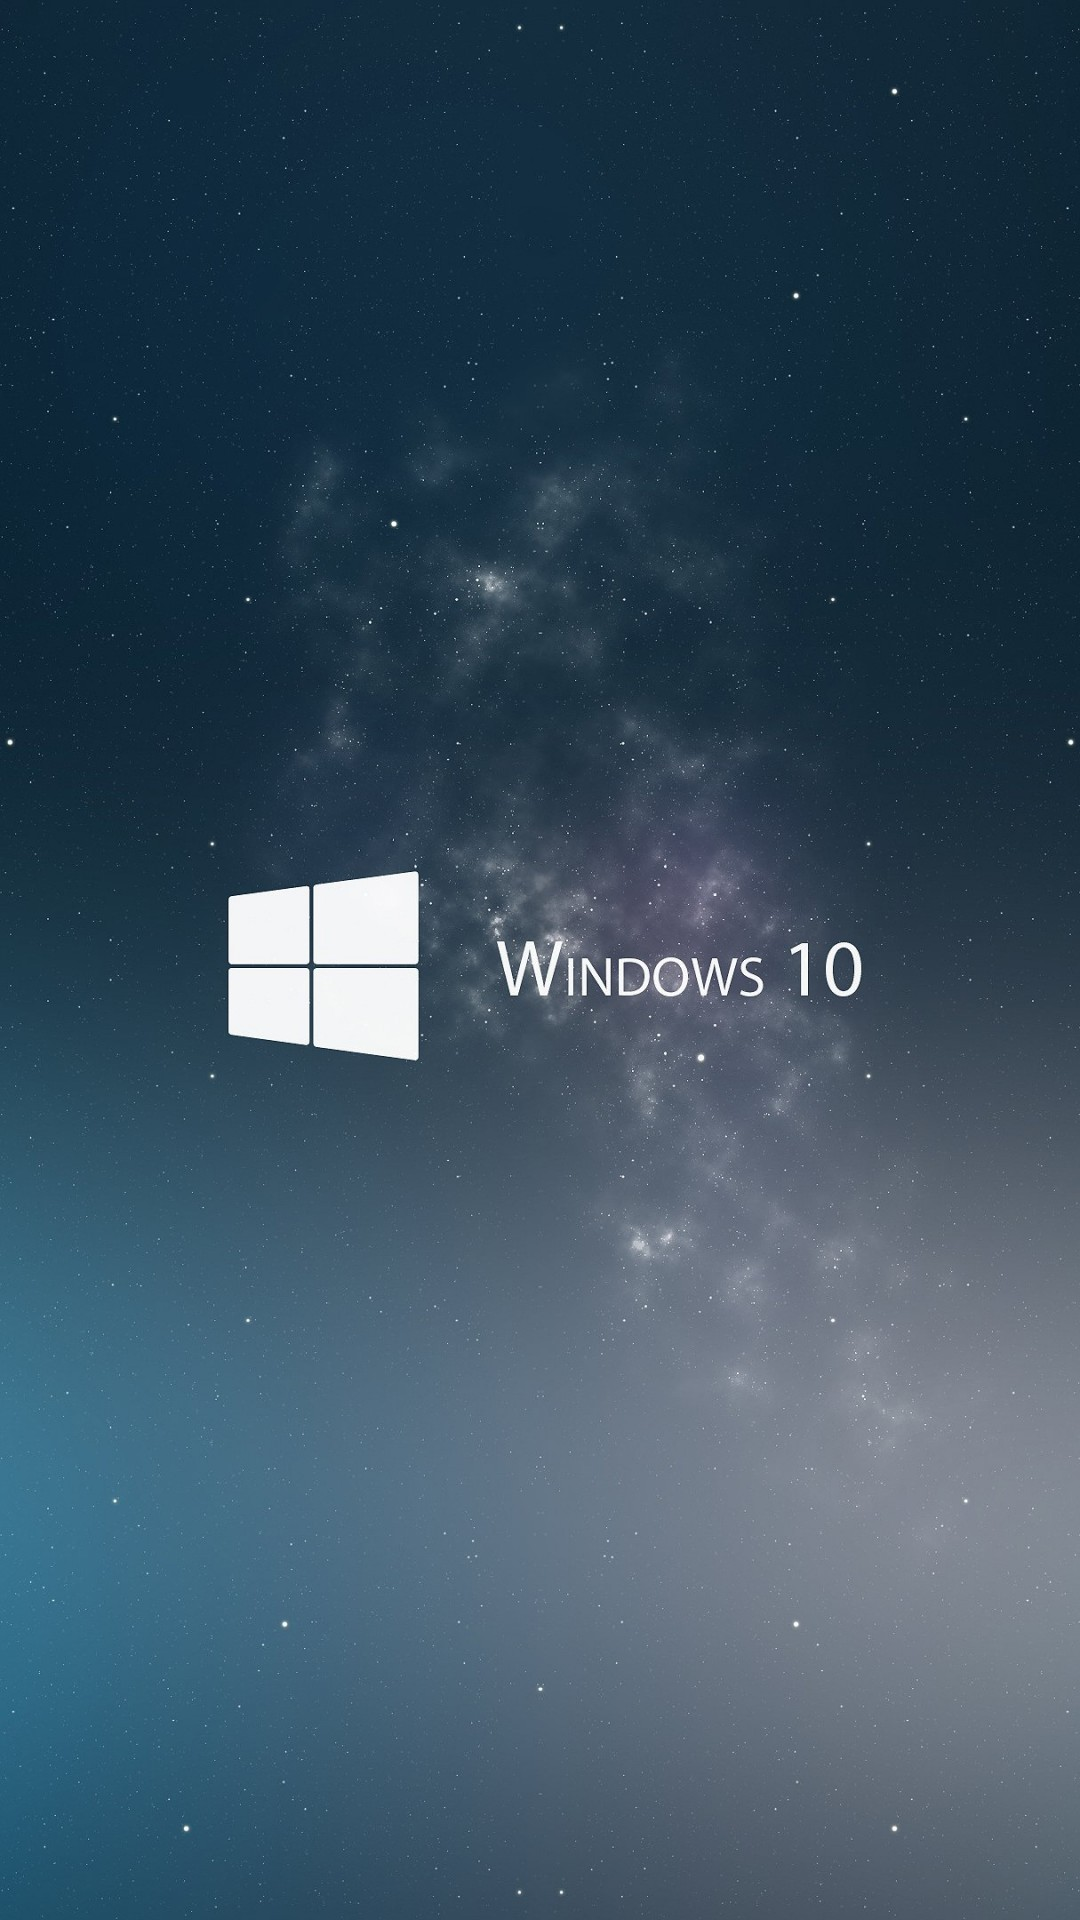 Windows 10 Wallpaper for SAMSUNG Galaxy S5